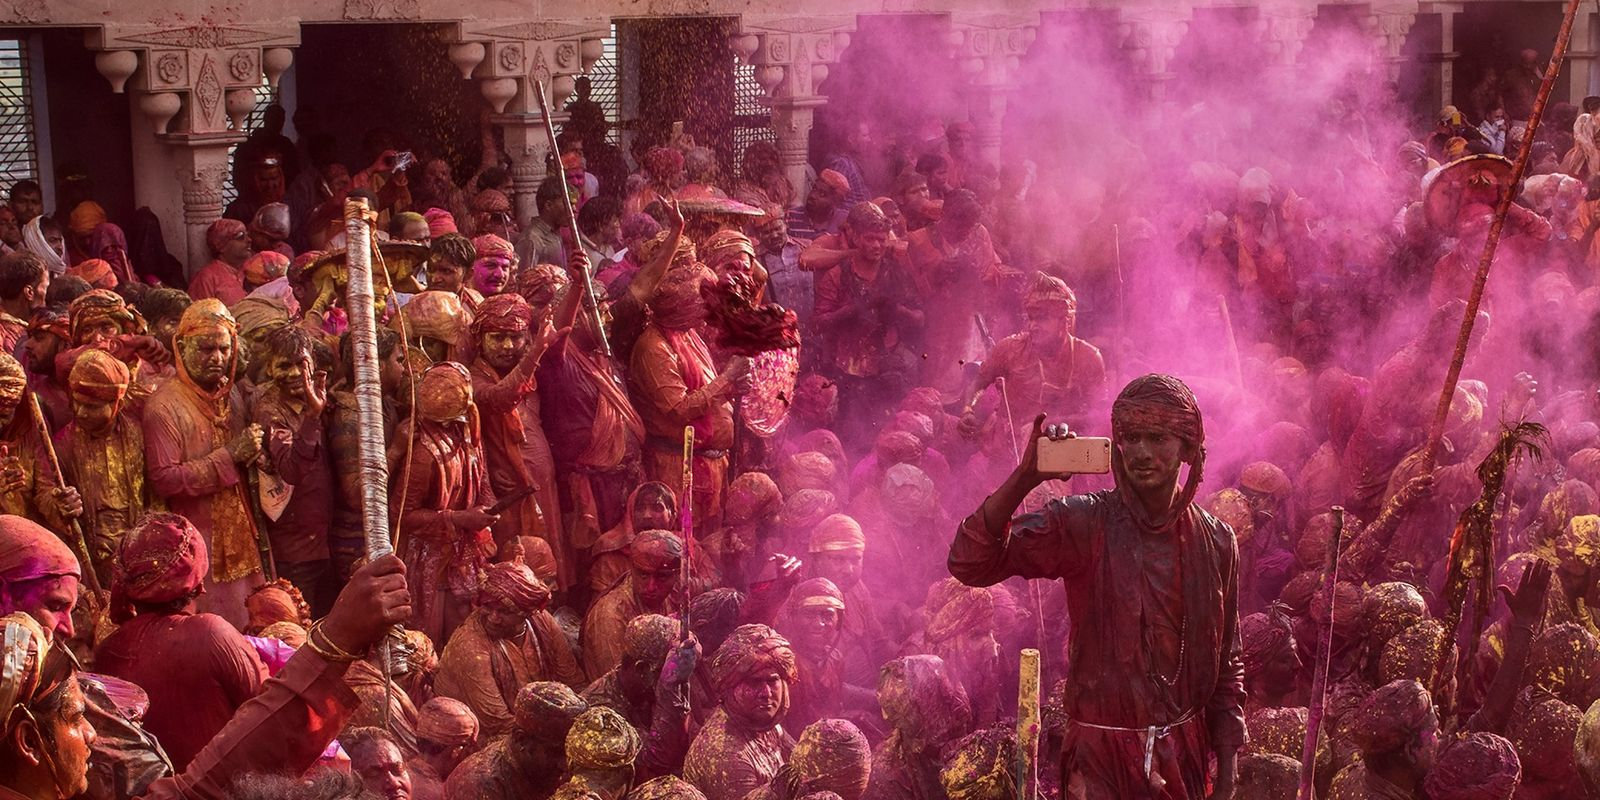 Photo story: celebrating Holi festival in India's Braj region